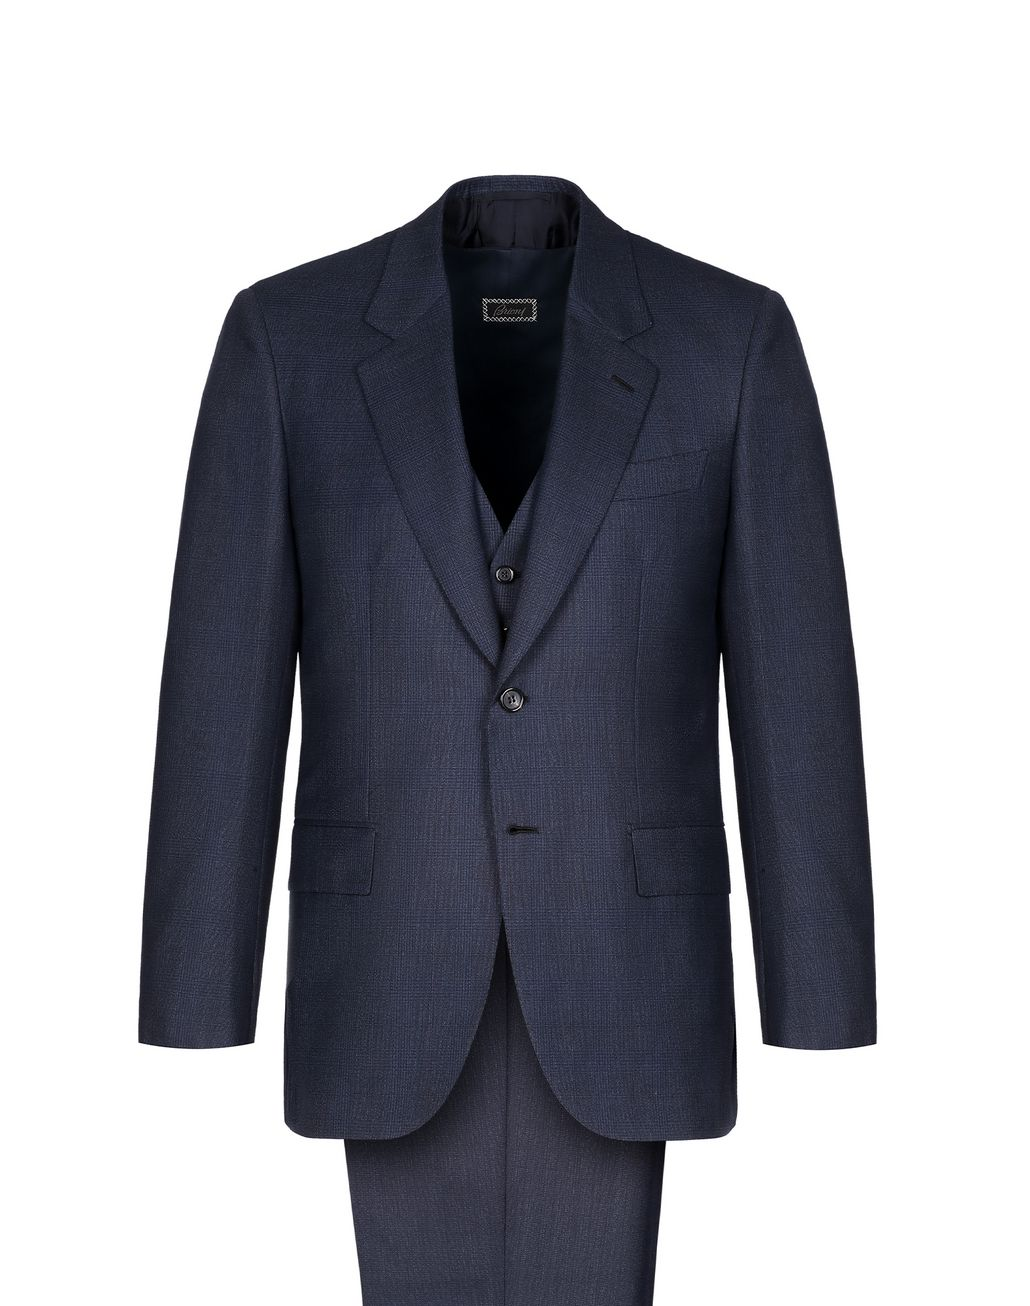 BRIONI Navy Blue Mismatched Parioli Suit  Suits & Jackets Man f